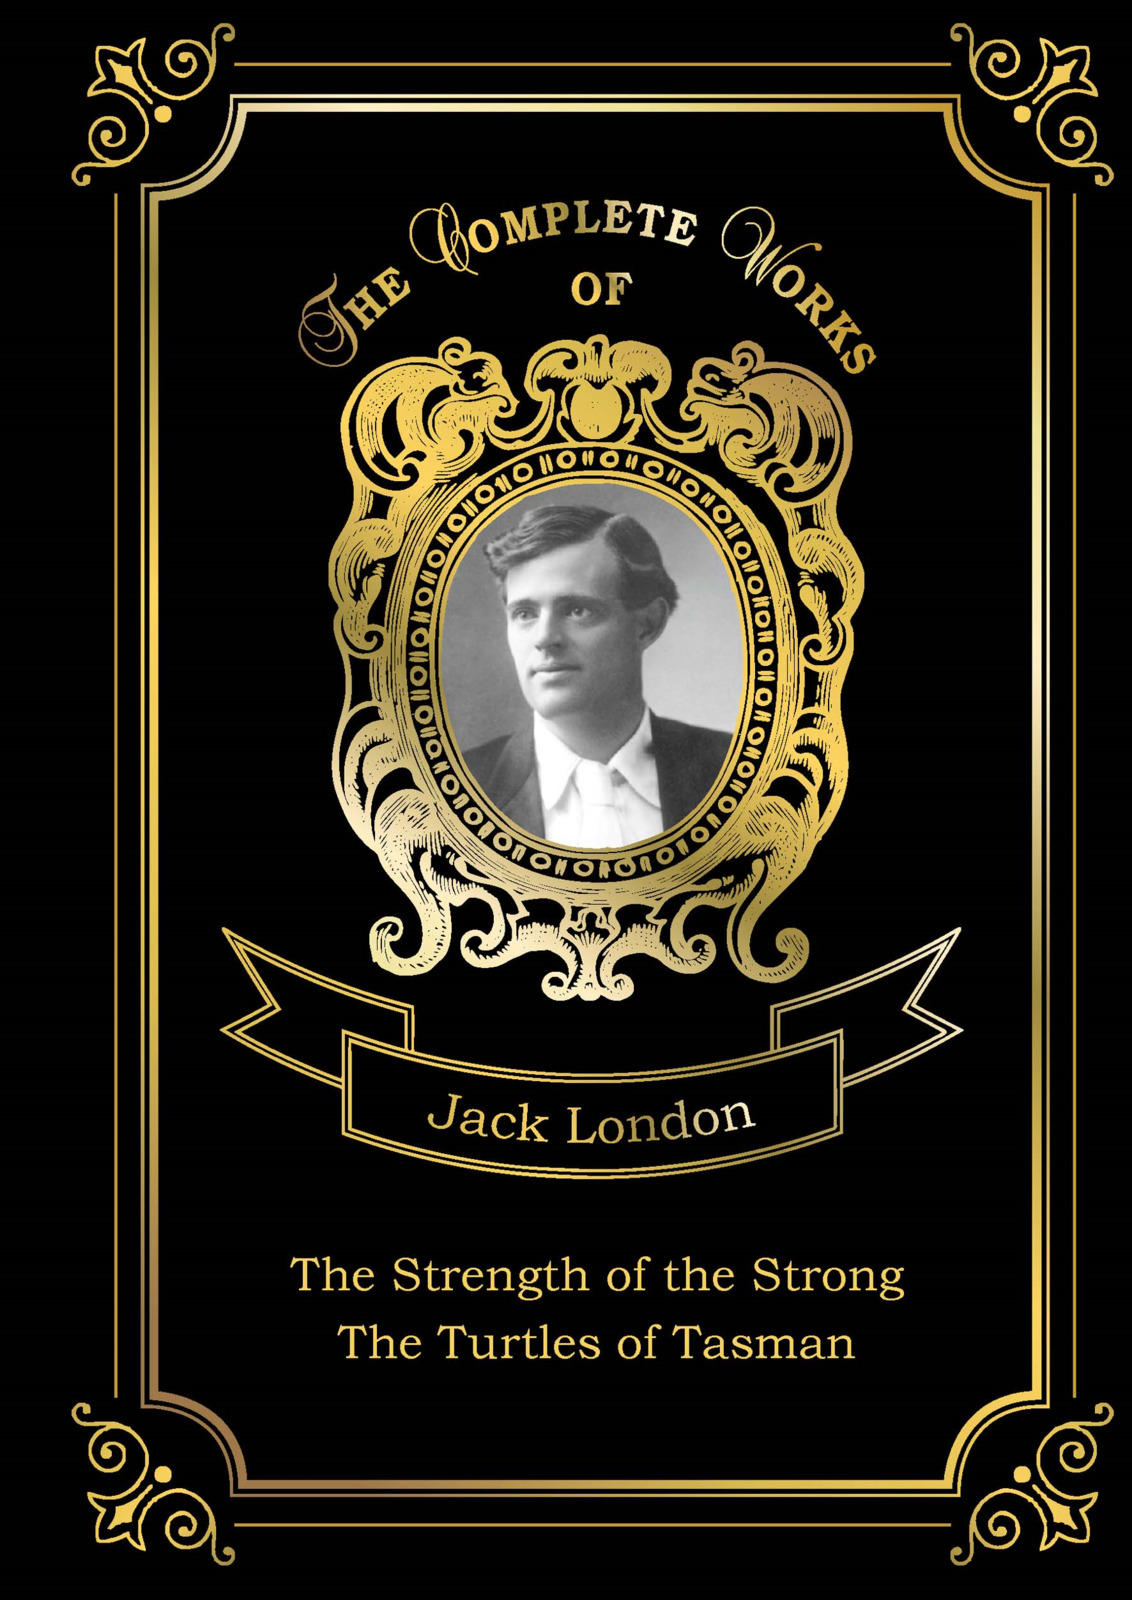 Jack London The Strength of the Strong: The Turtles of Tasman land of savagery land of promise – the european image of the american